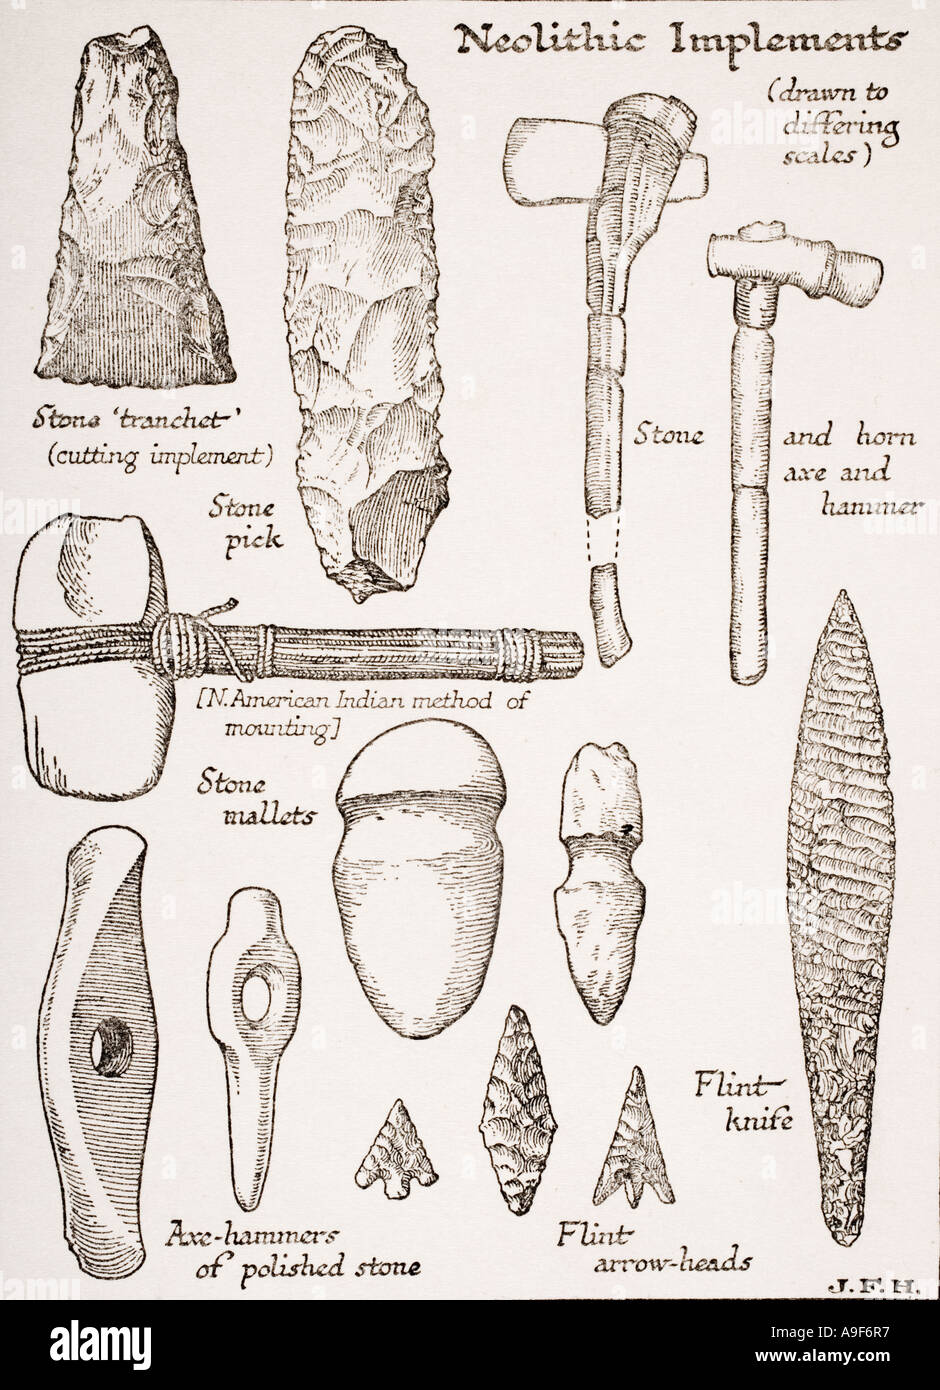 Neolithic Implements.  Weapons, tools. - Stock Image